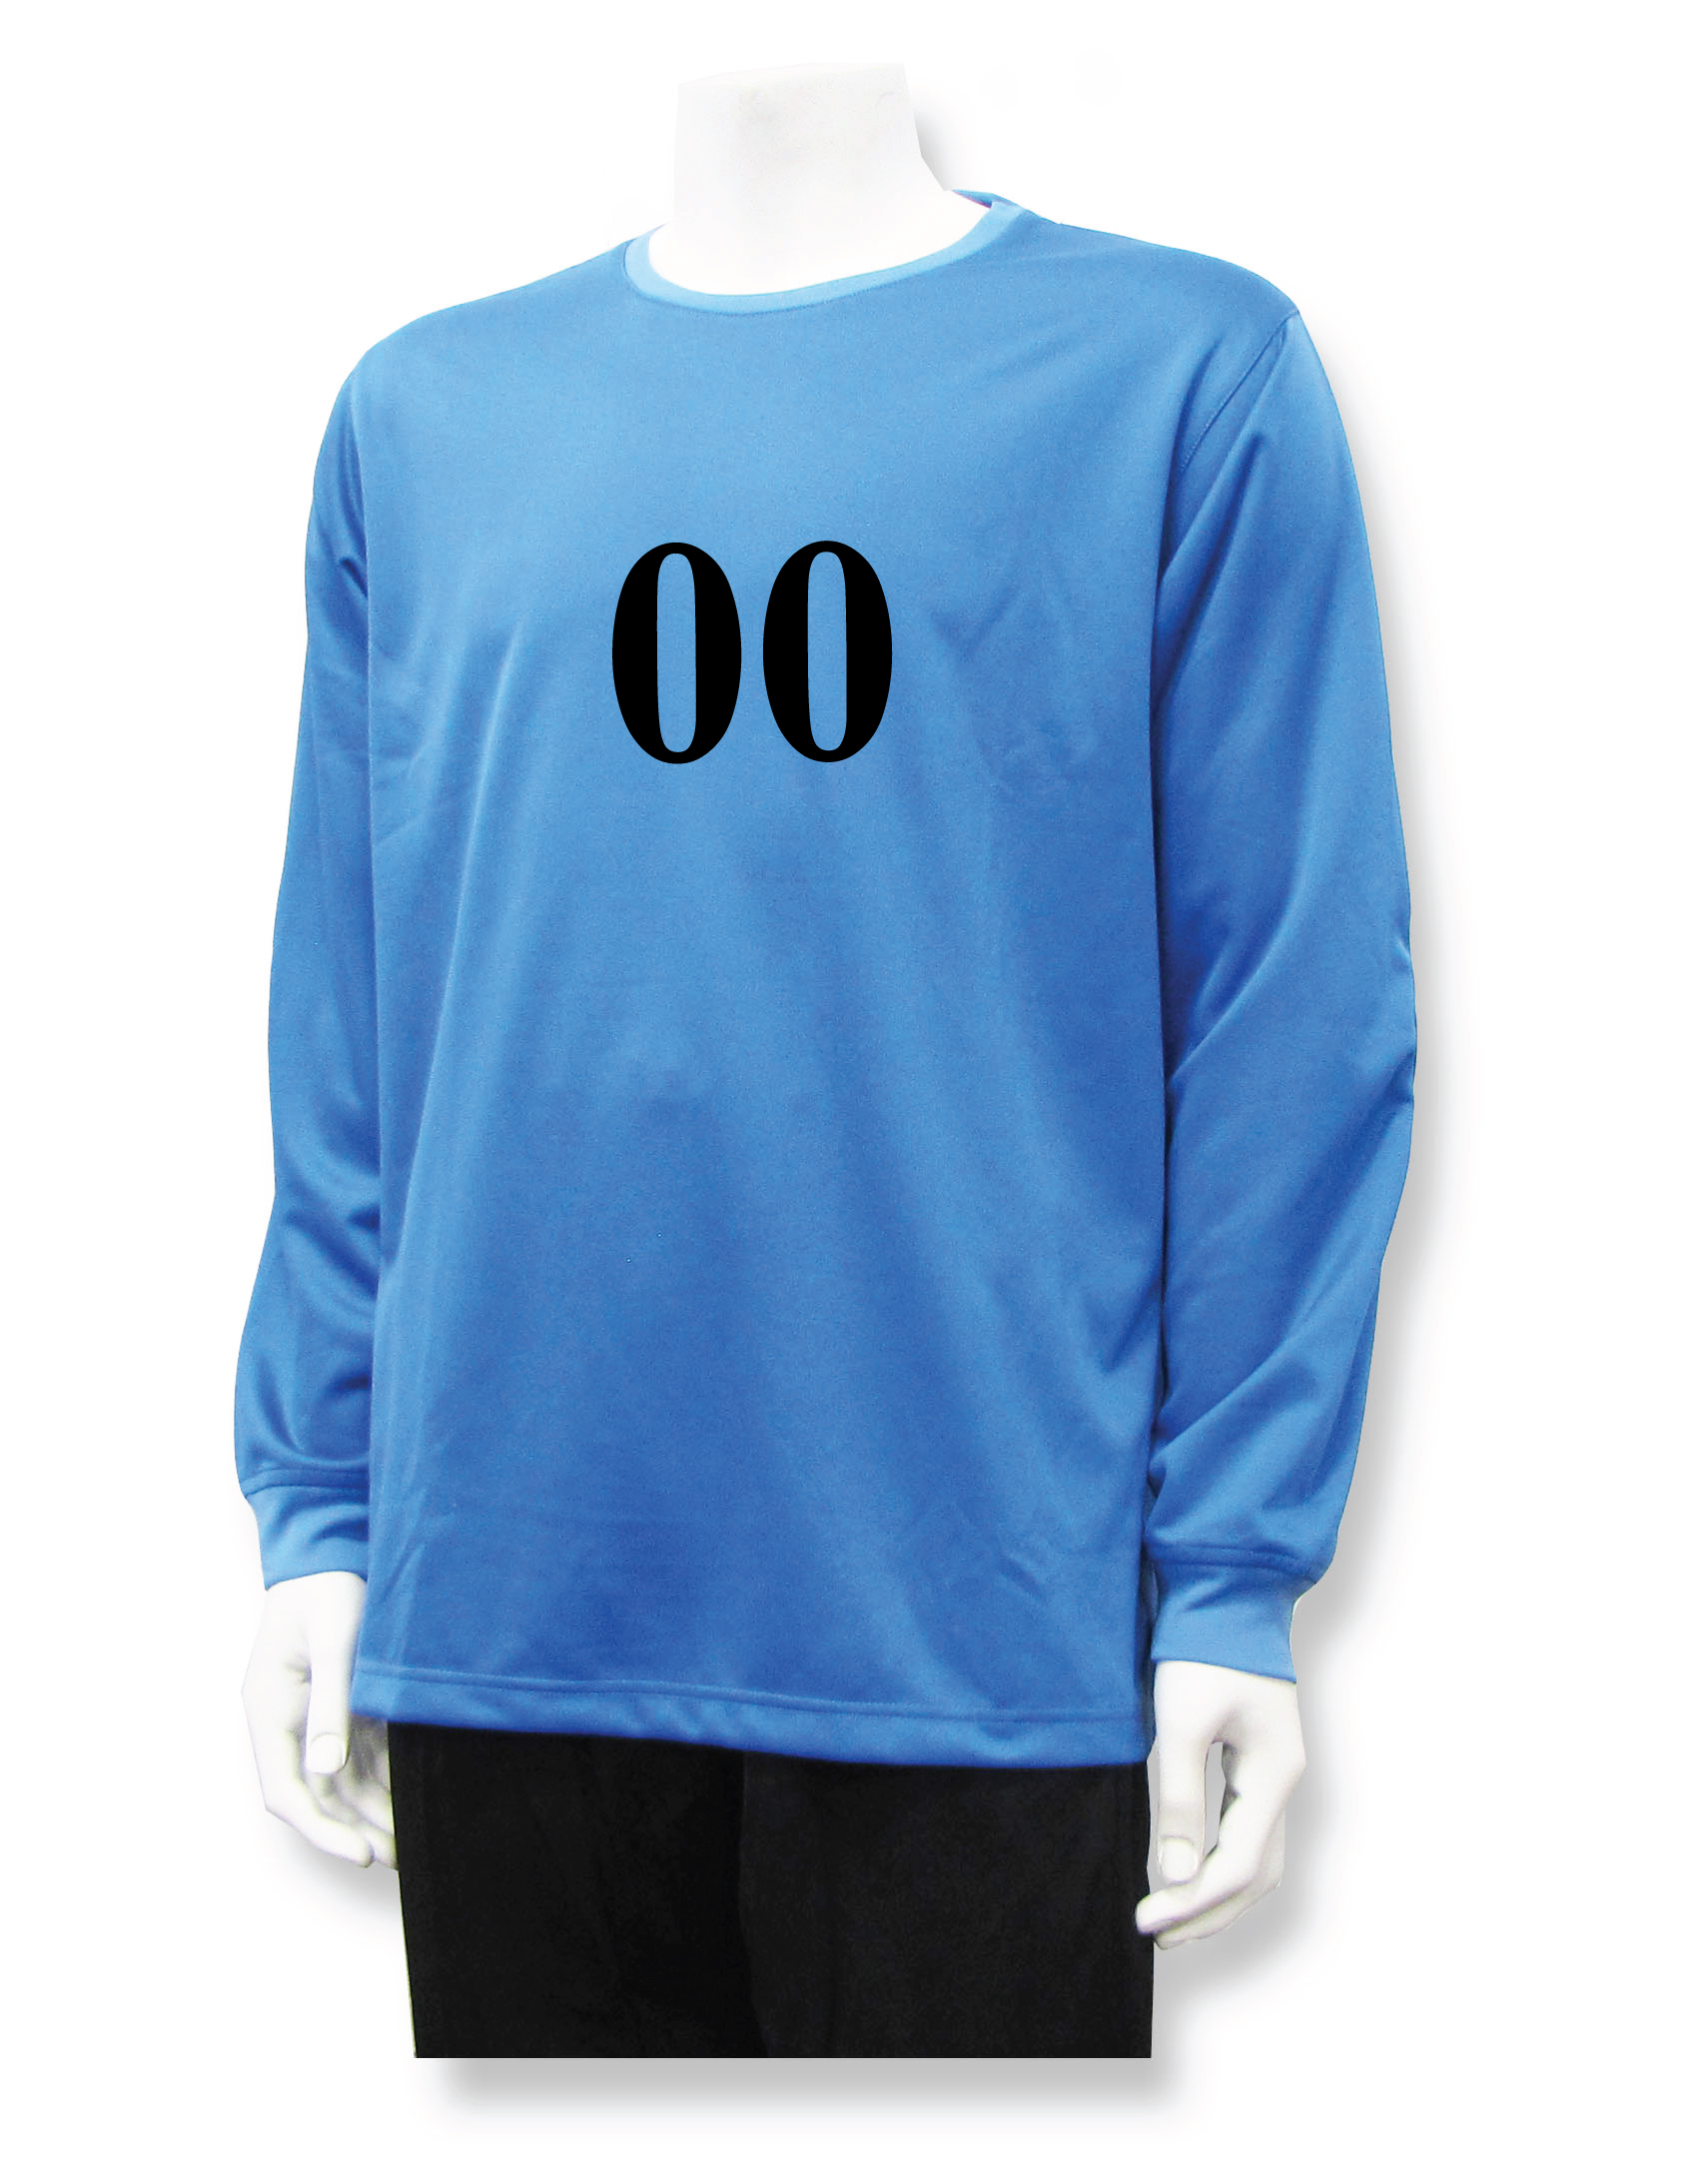 Long sleeve soccer goalie jersey with number, in Colubmia Blue, by Code Four Athletics